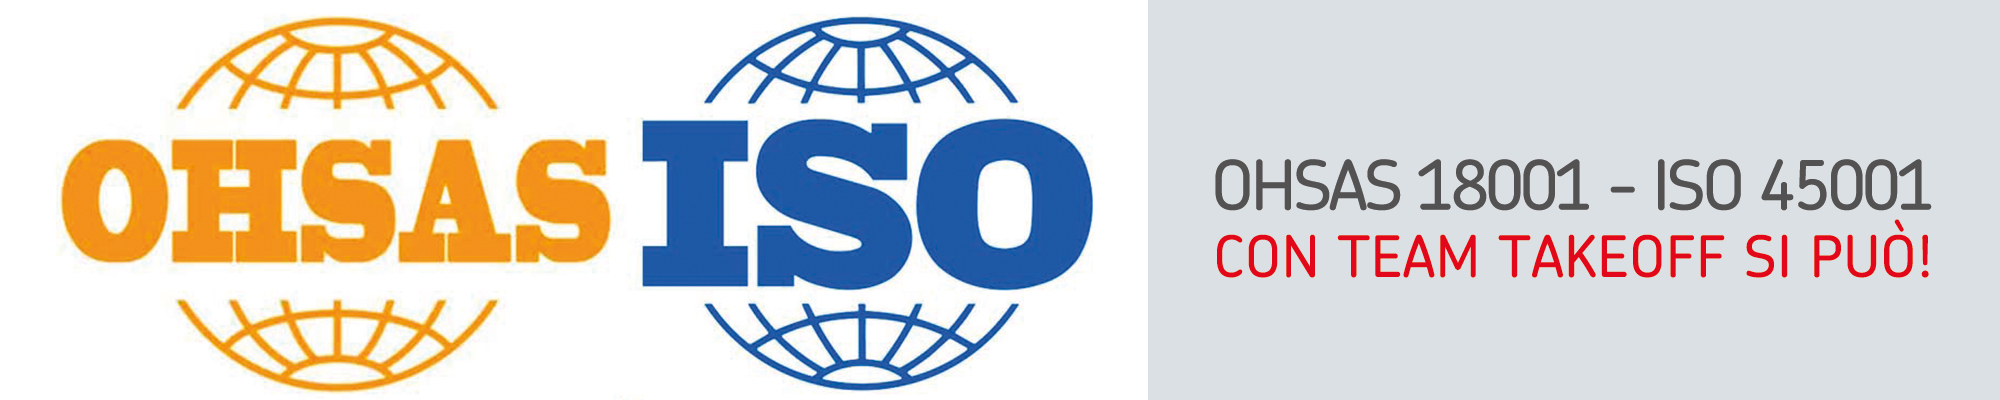 OHSAS 18001 – ISO 45001